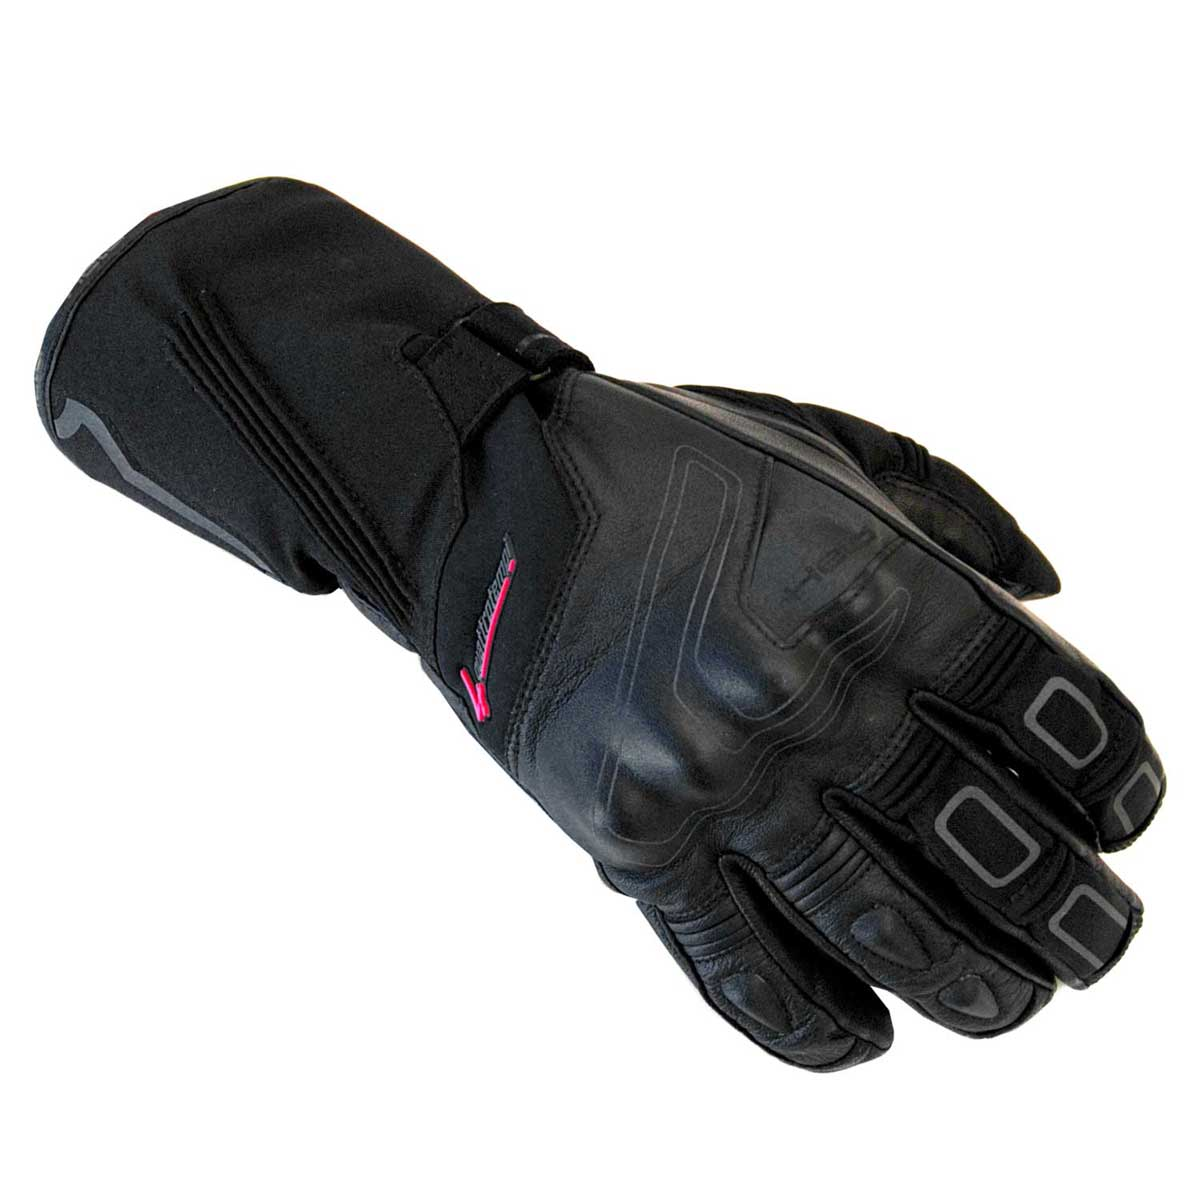 Held Cold Champ Gloves - One of the Top 10 warmest motorcycle gloves ideal for Winter riding